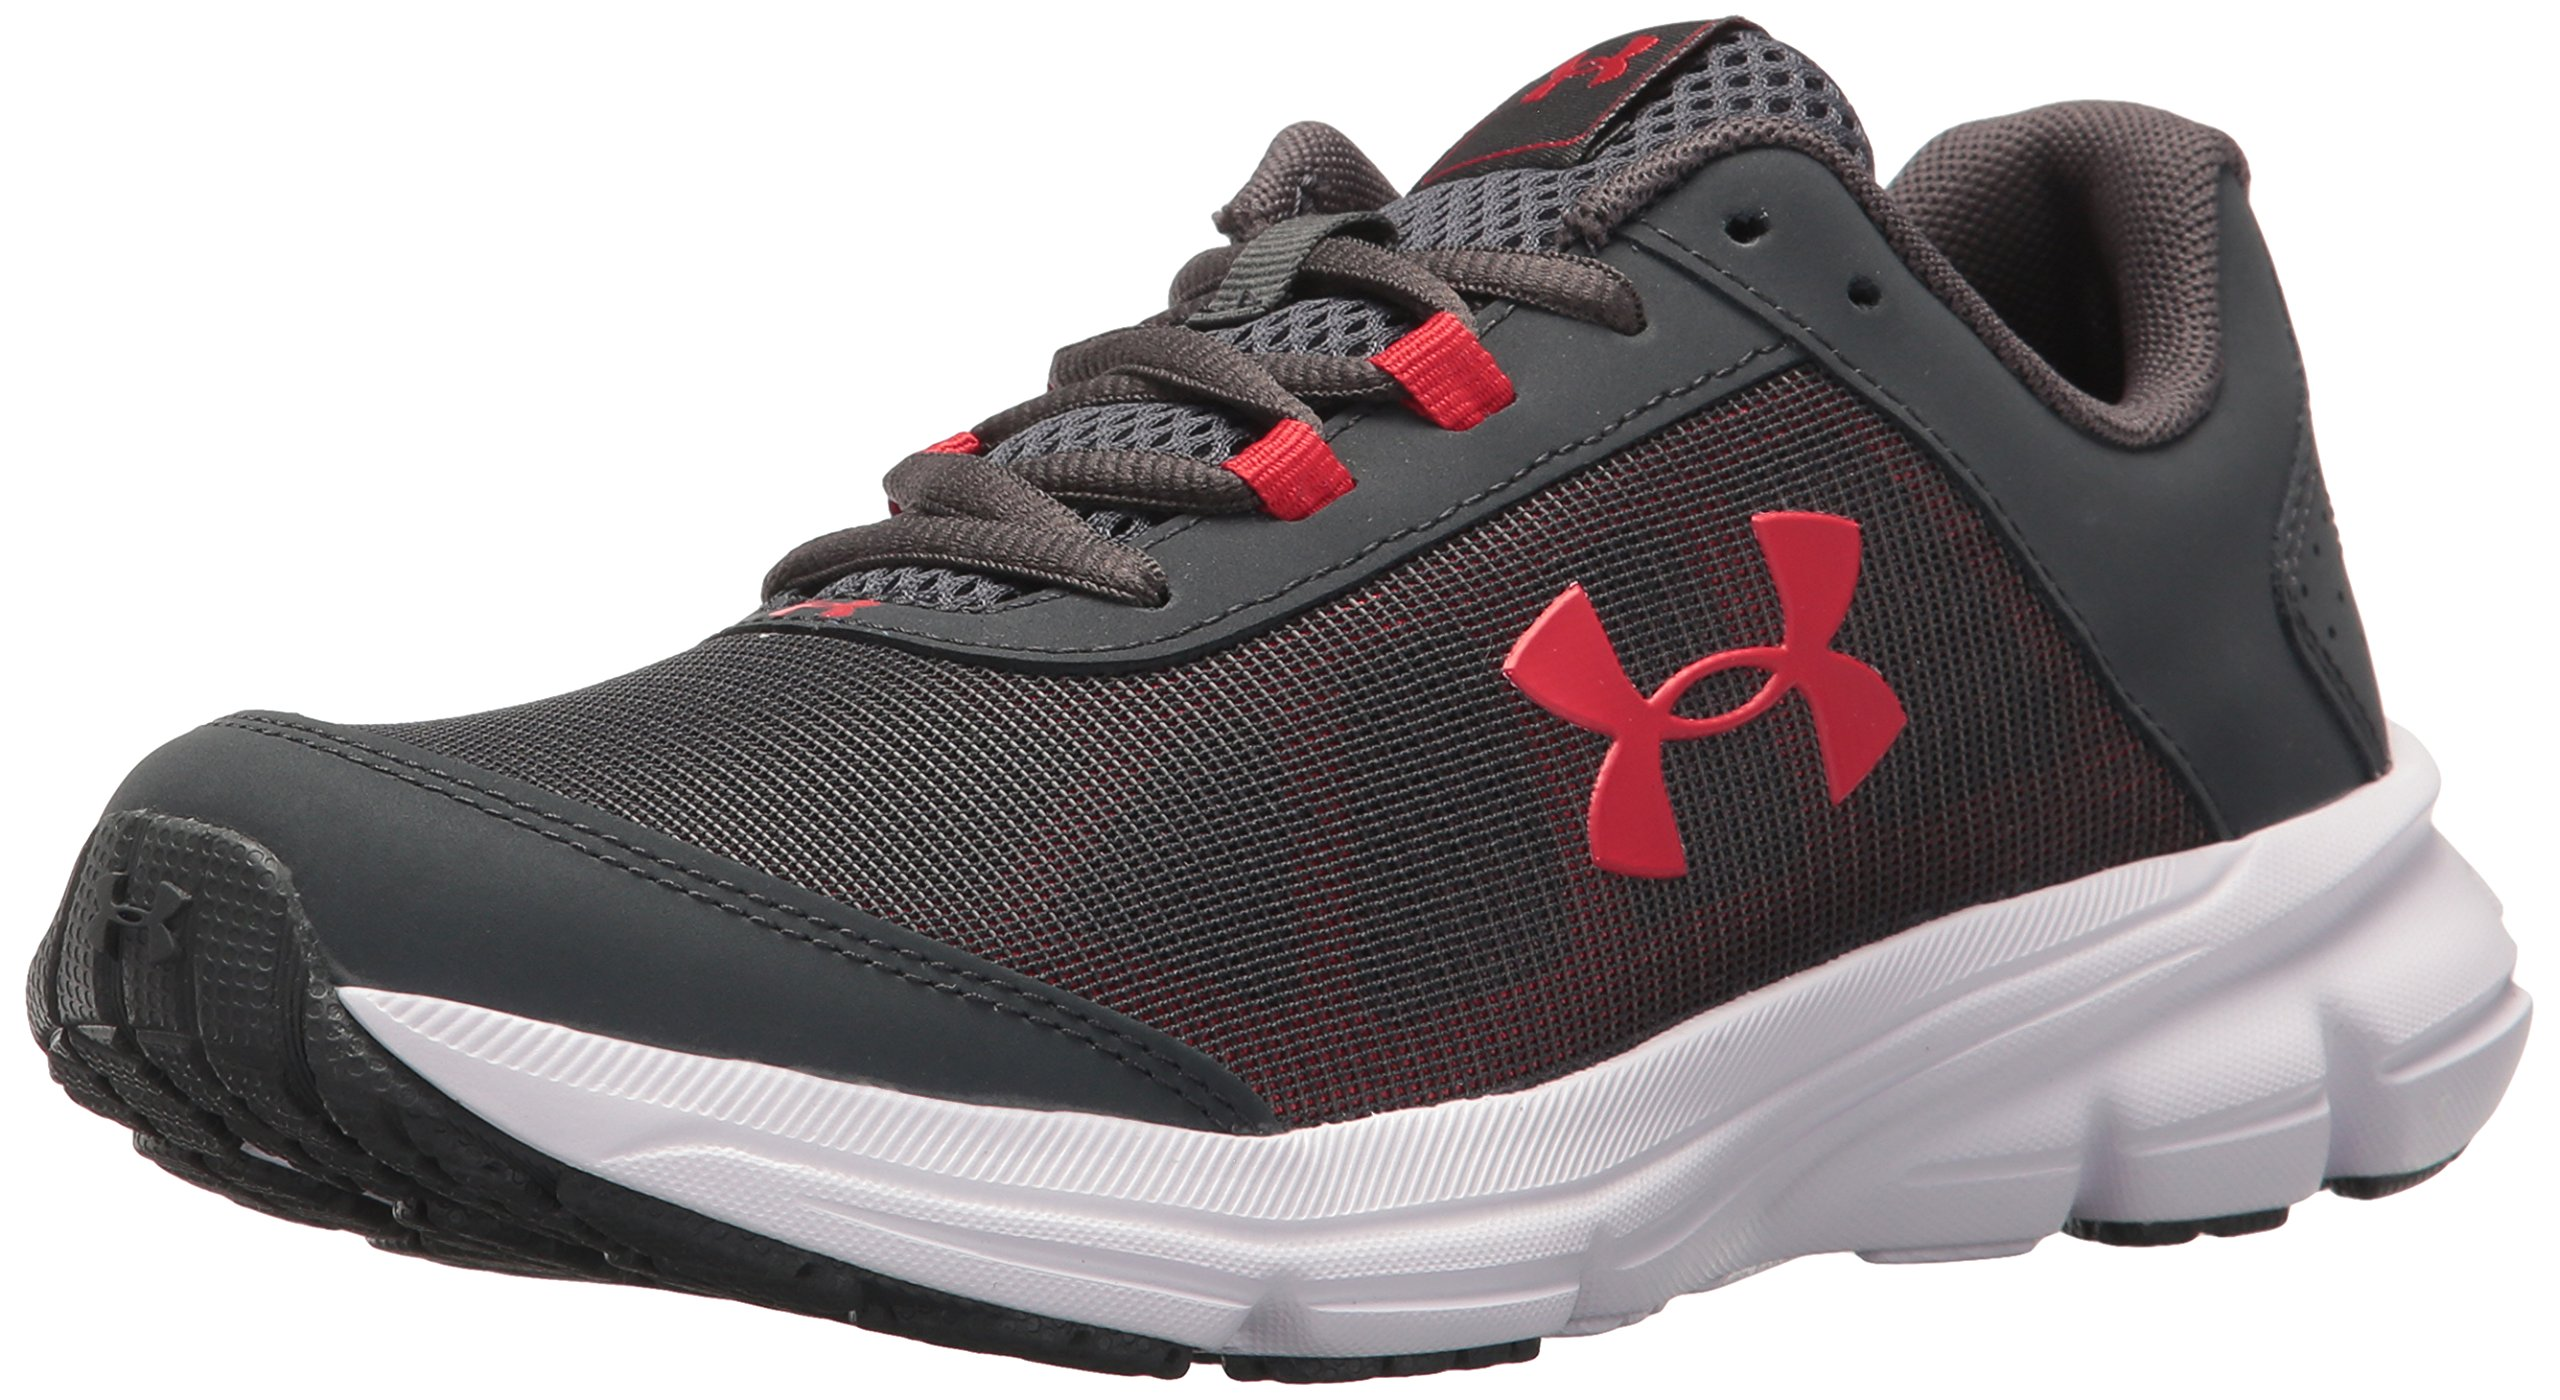 Under Armour Kids' Grade School Rave 2 Sneaker,Stealth Gray (100)/White,3.5 M US by Under Armour (Image #1)